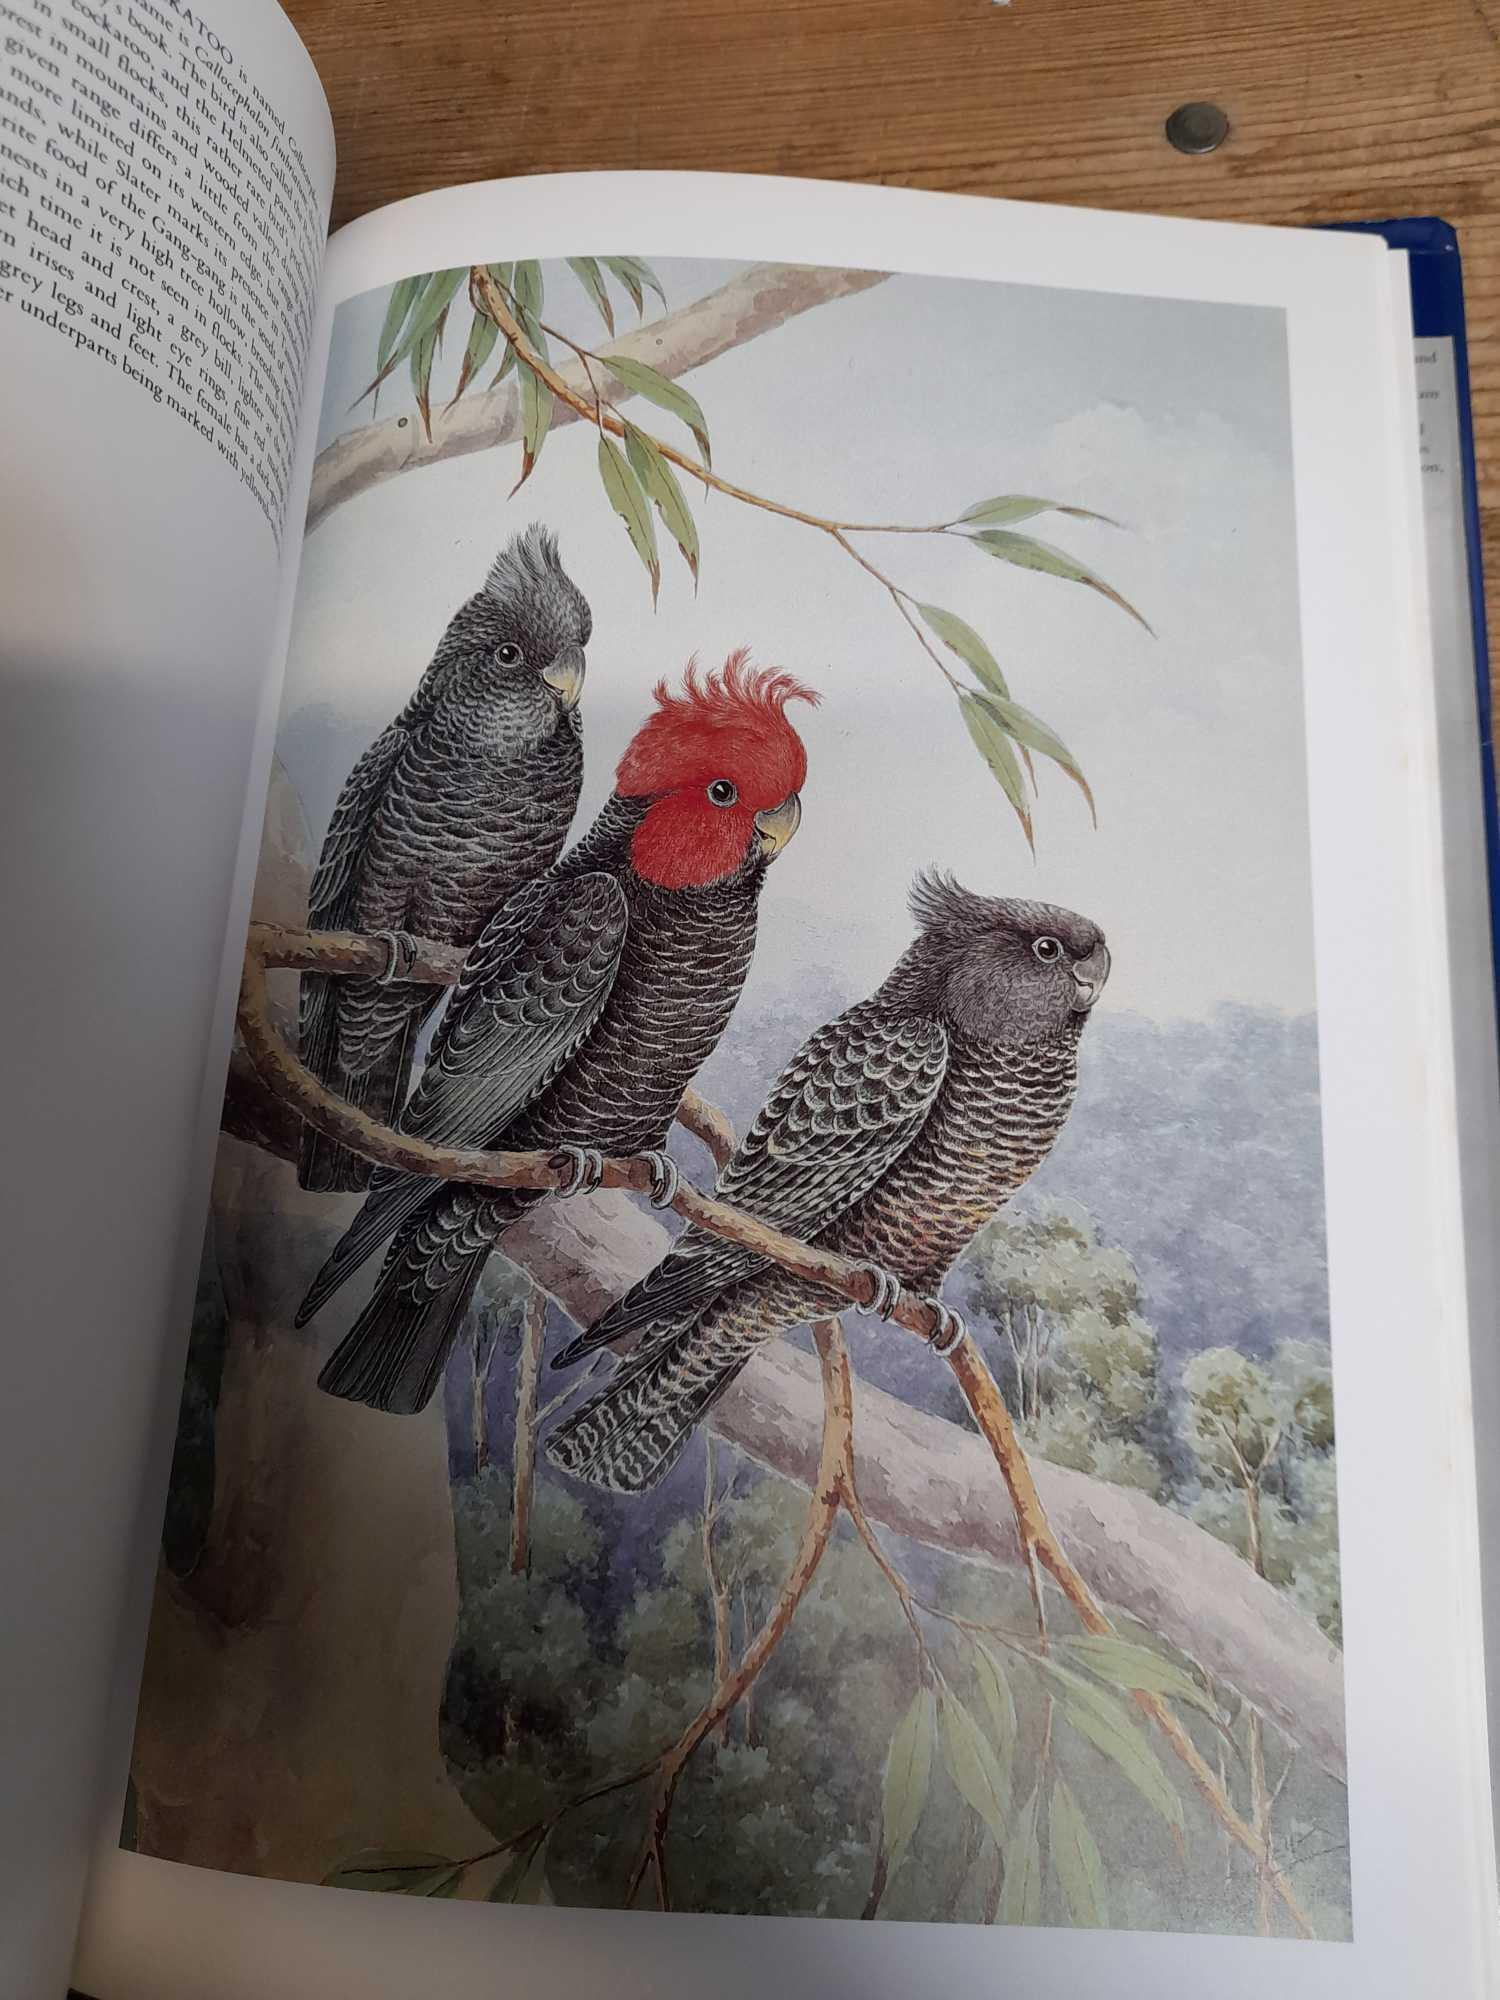 3 PARROT BOOKS - Image 7 of 20